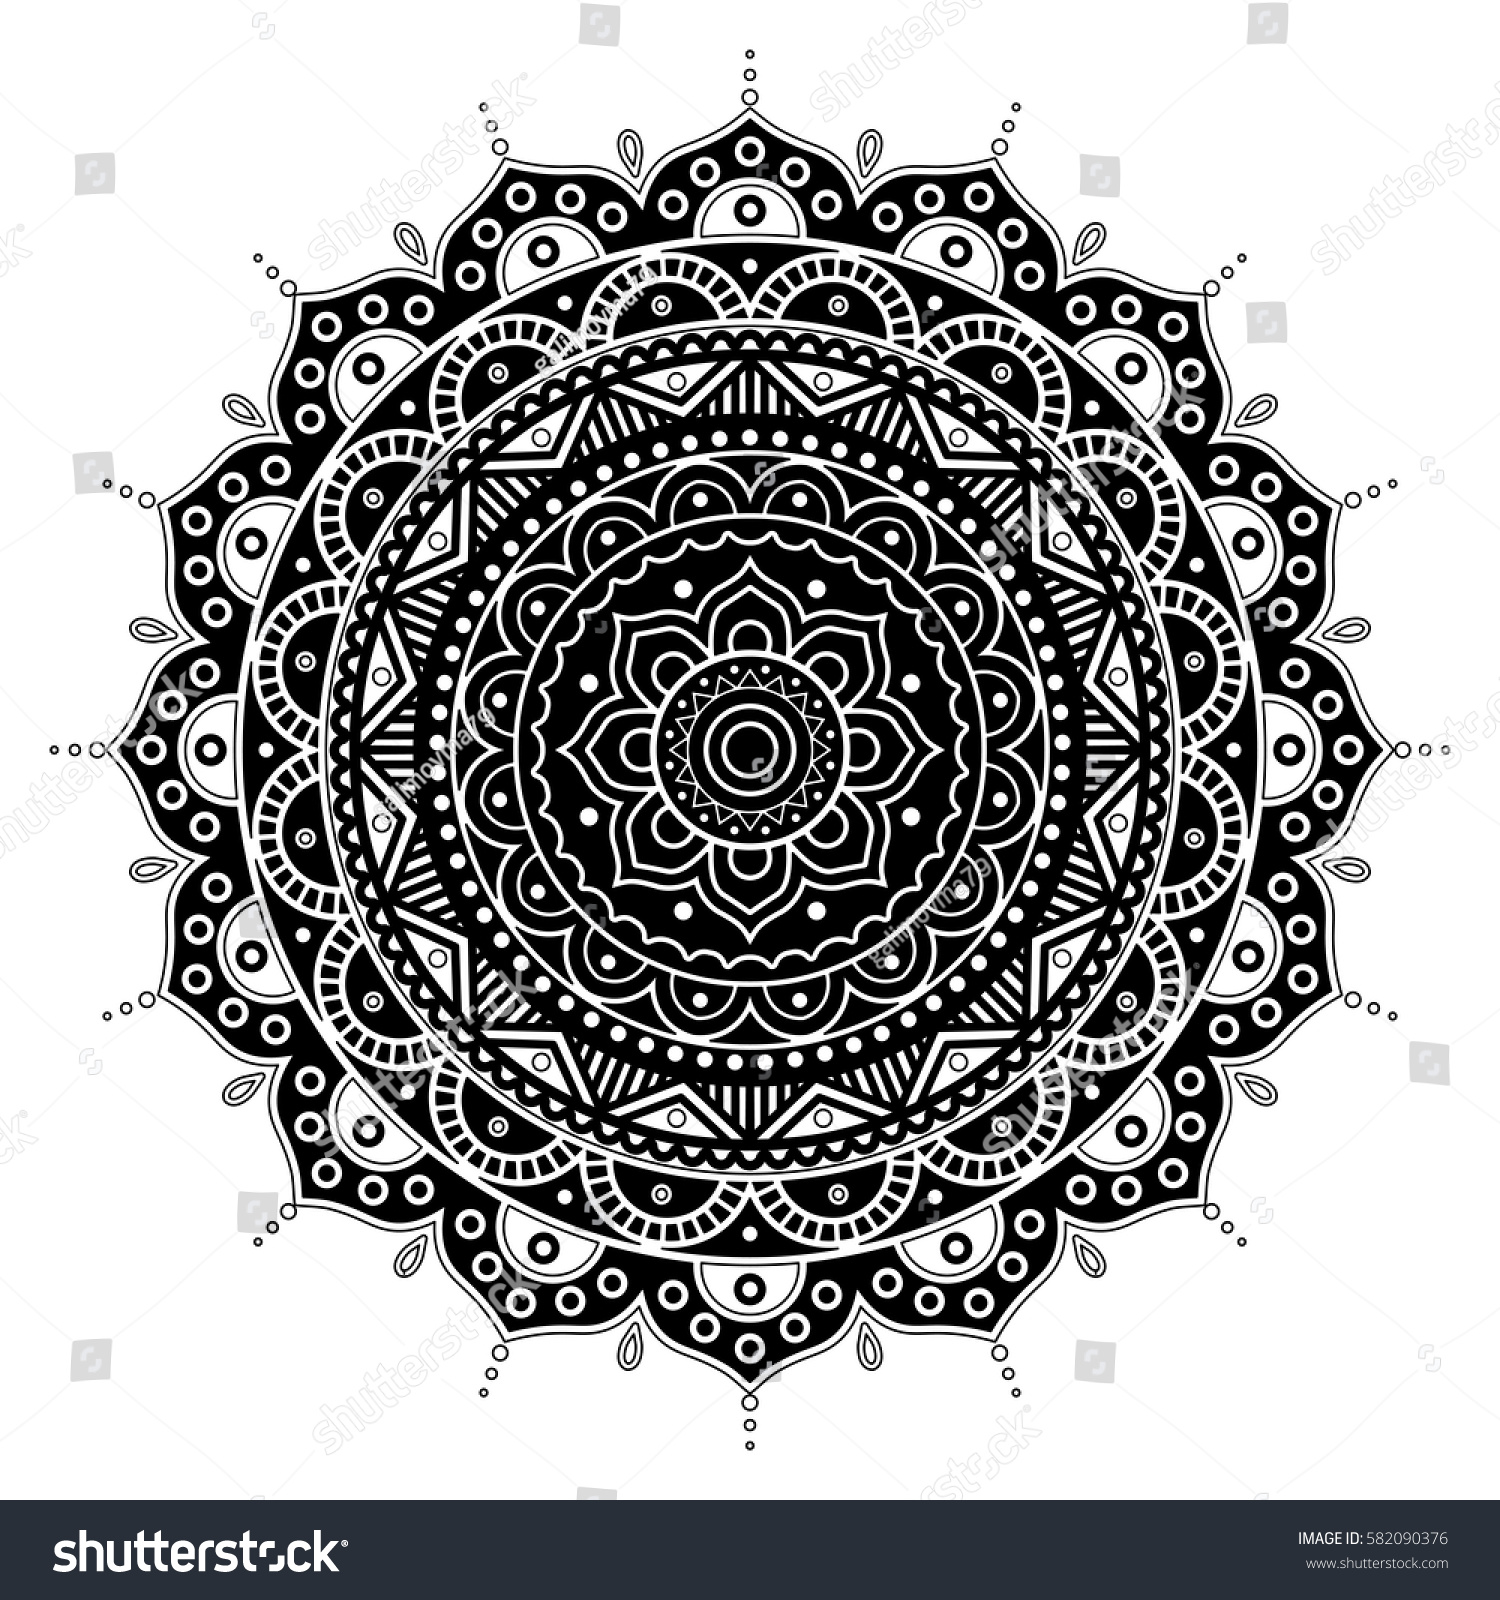 Islamic coloring book pages